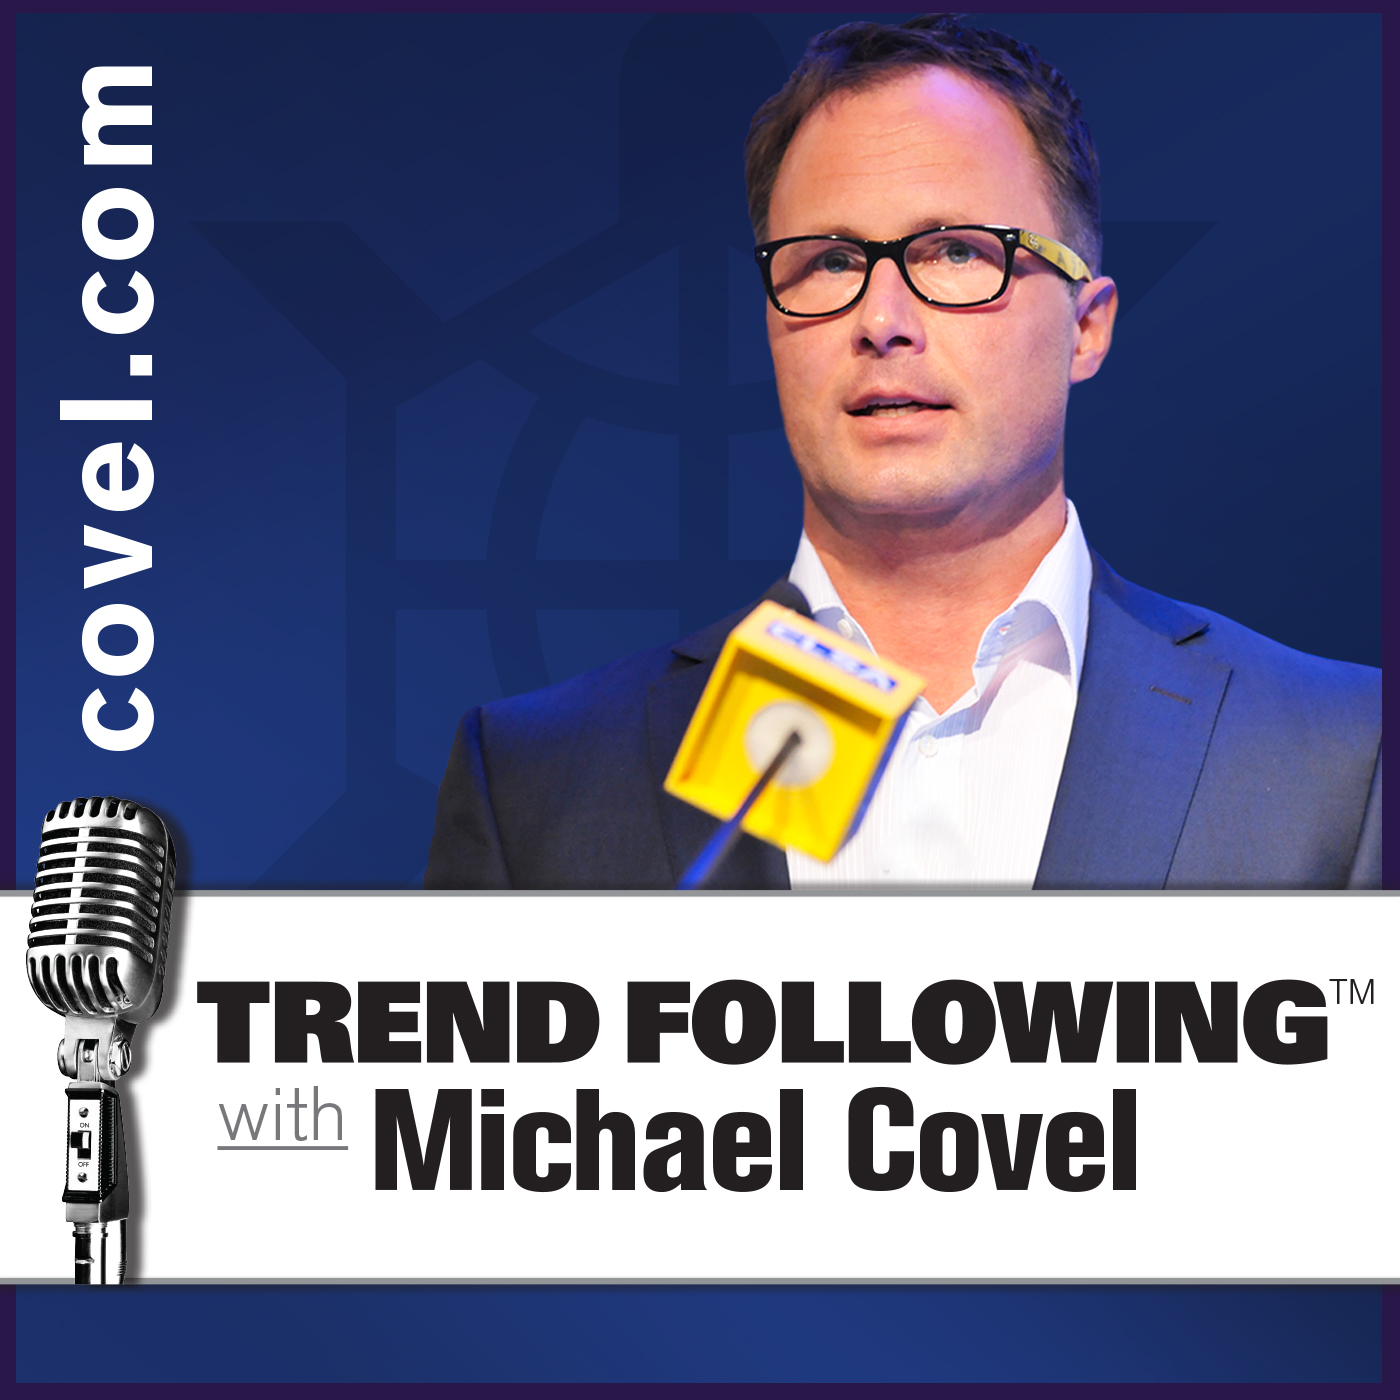 Ep. 495: Ted Parkhill Interview with Michael Covel on Trend Following Radio